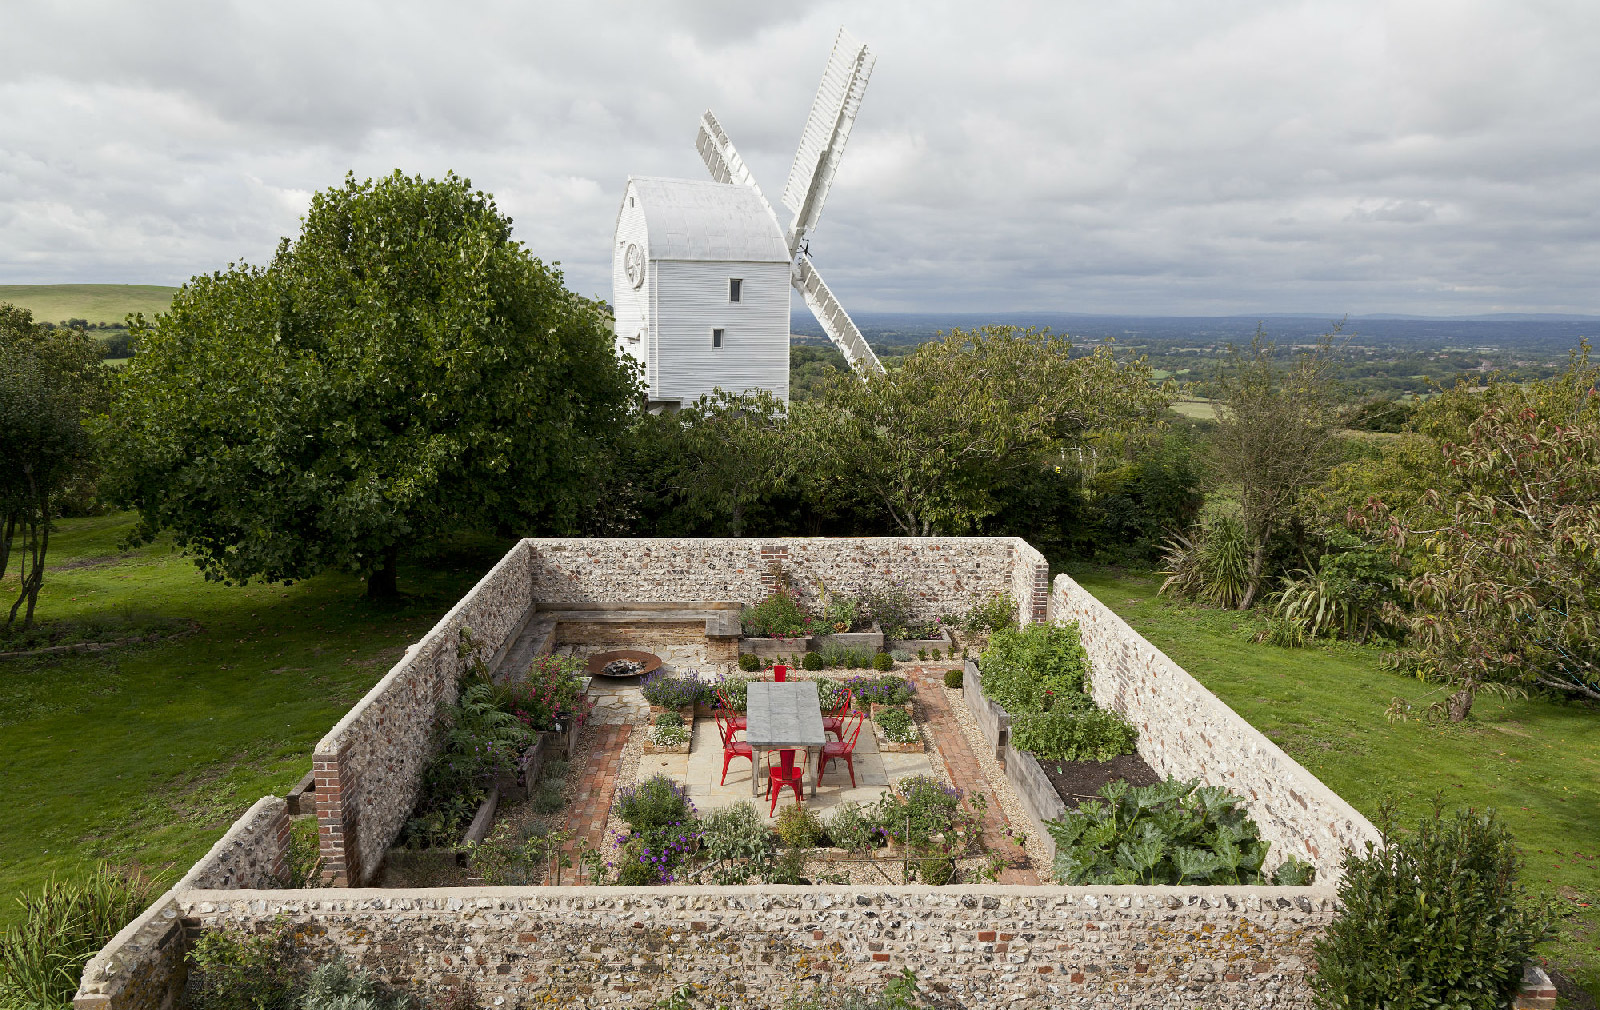 Holiday Home to rent in West Sussex UK by Architect Featherstone Young